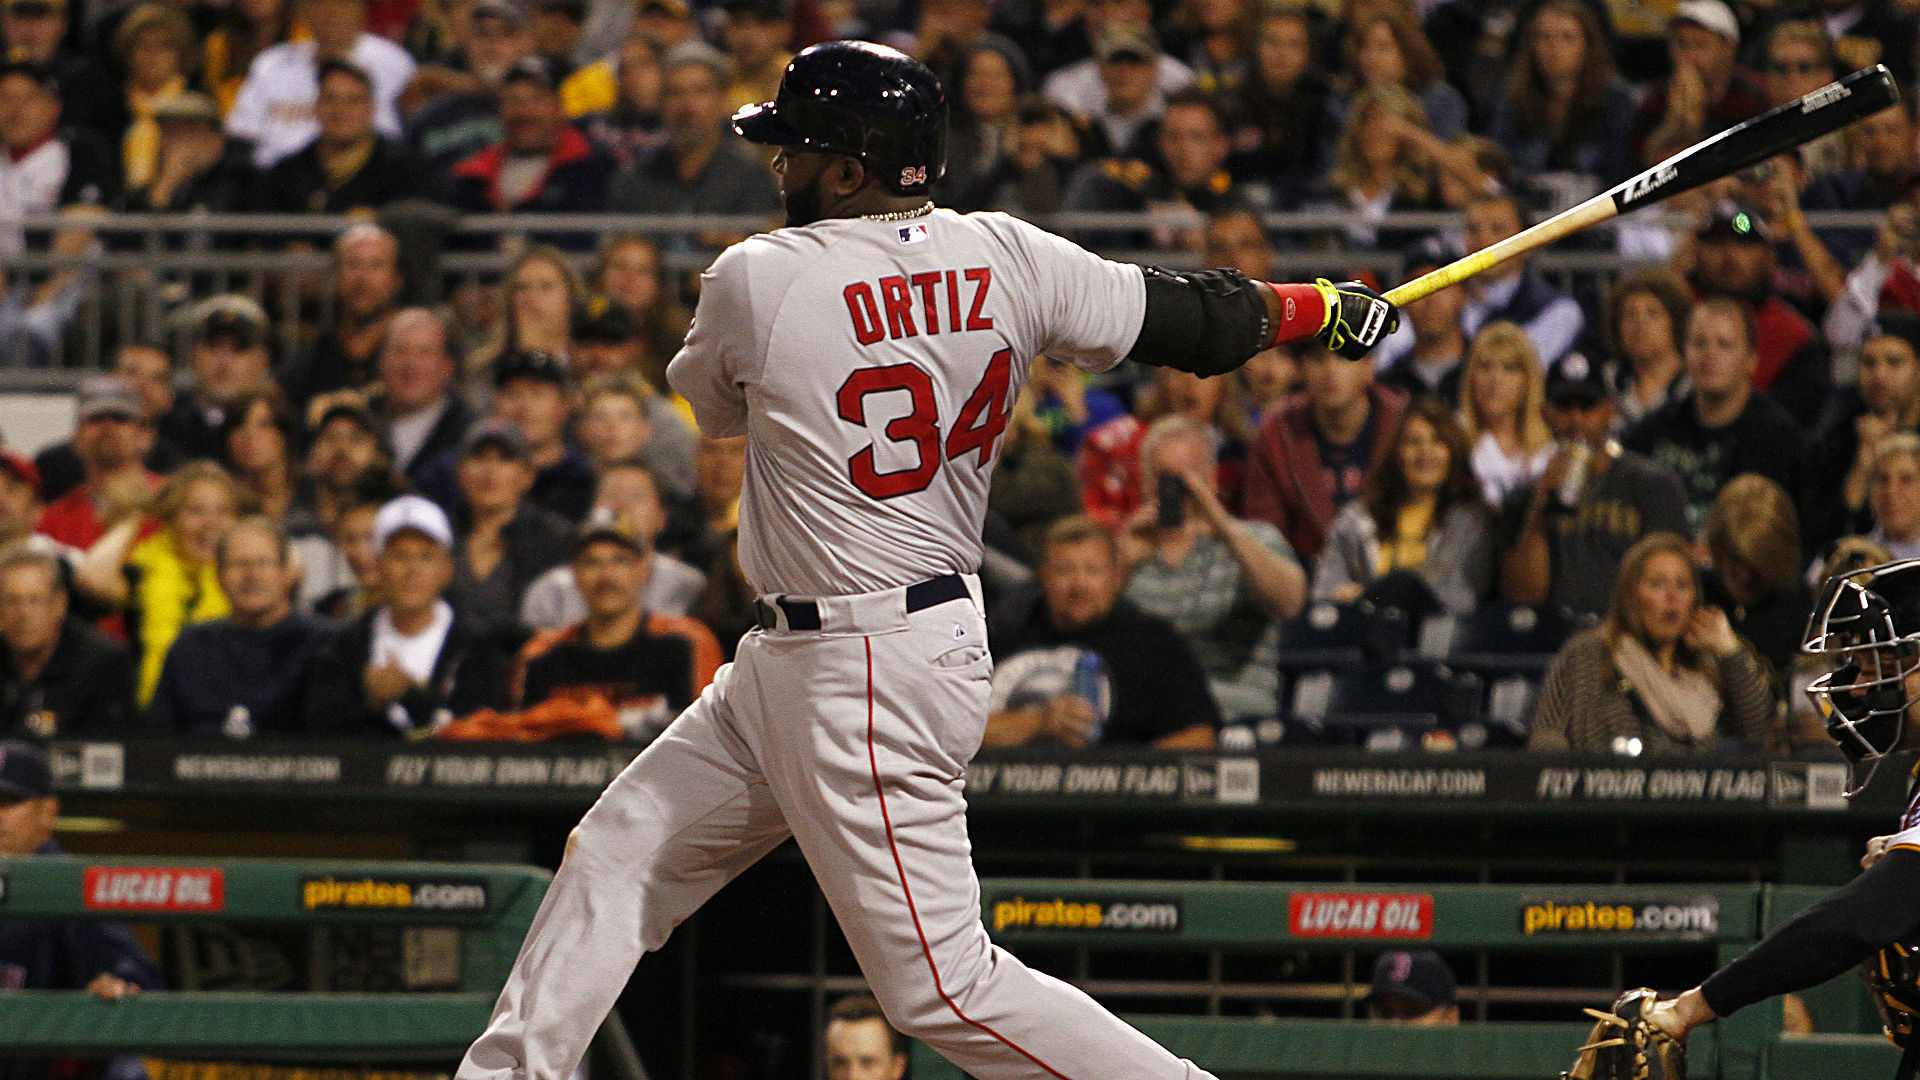 ortiz-david-030915-usnews-getty-ftr